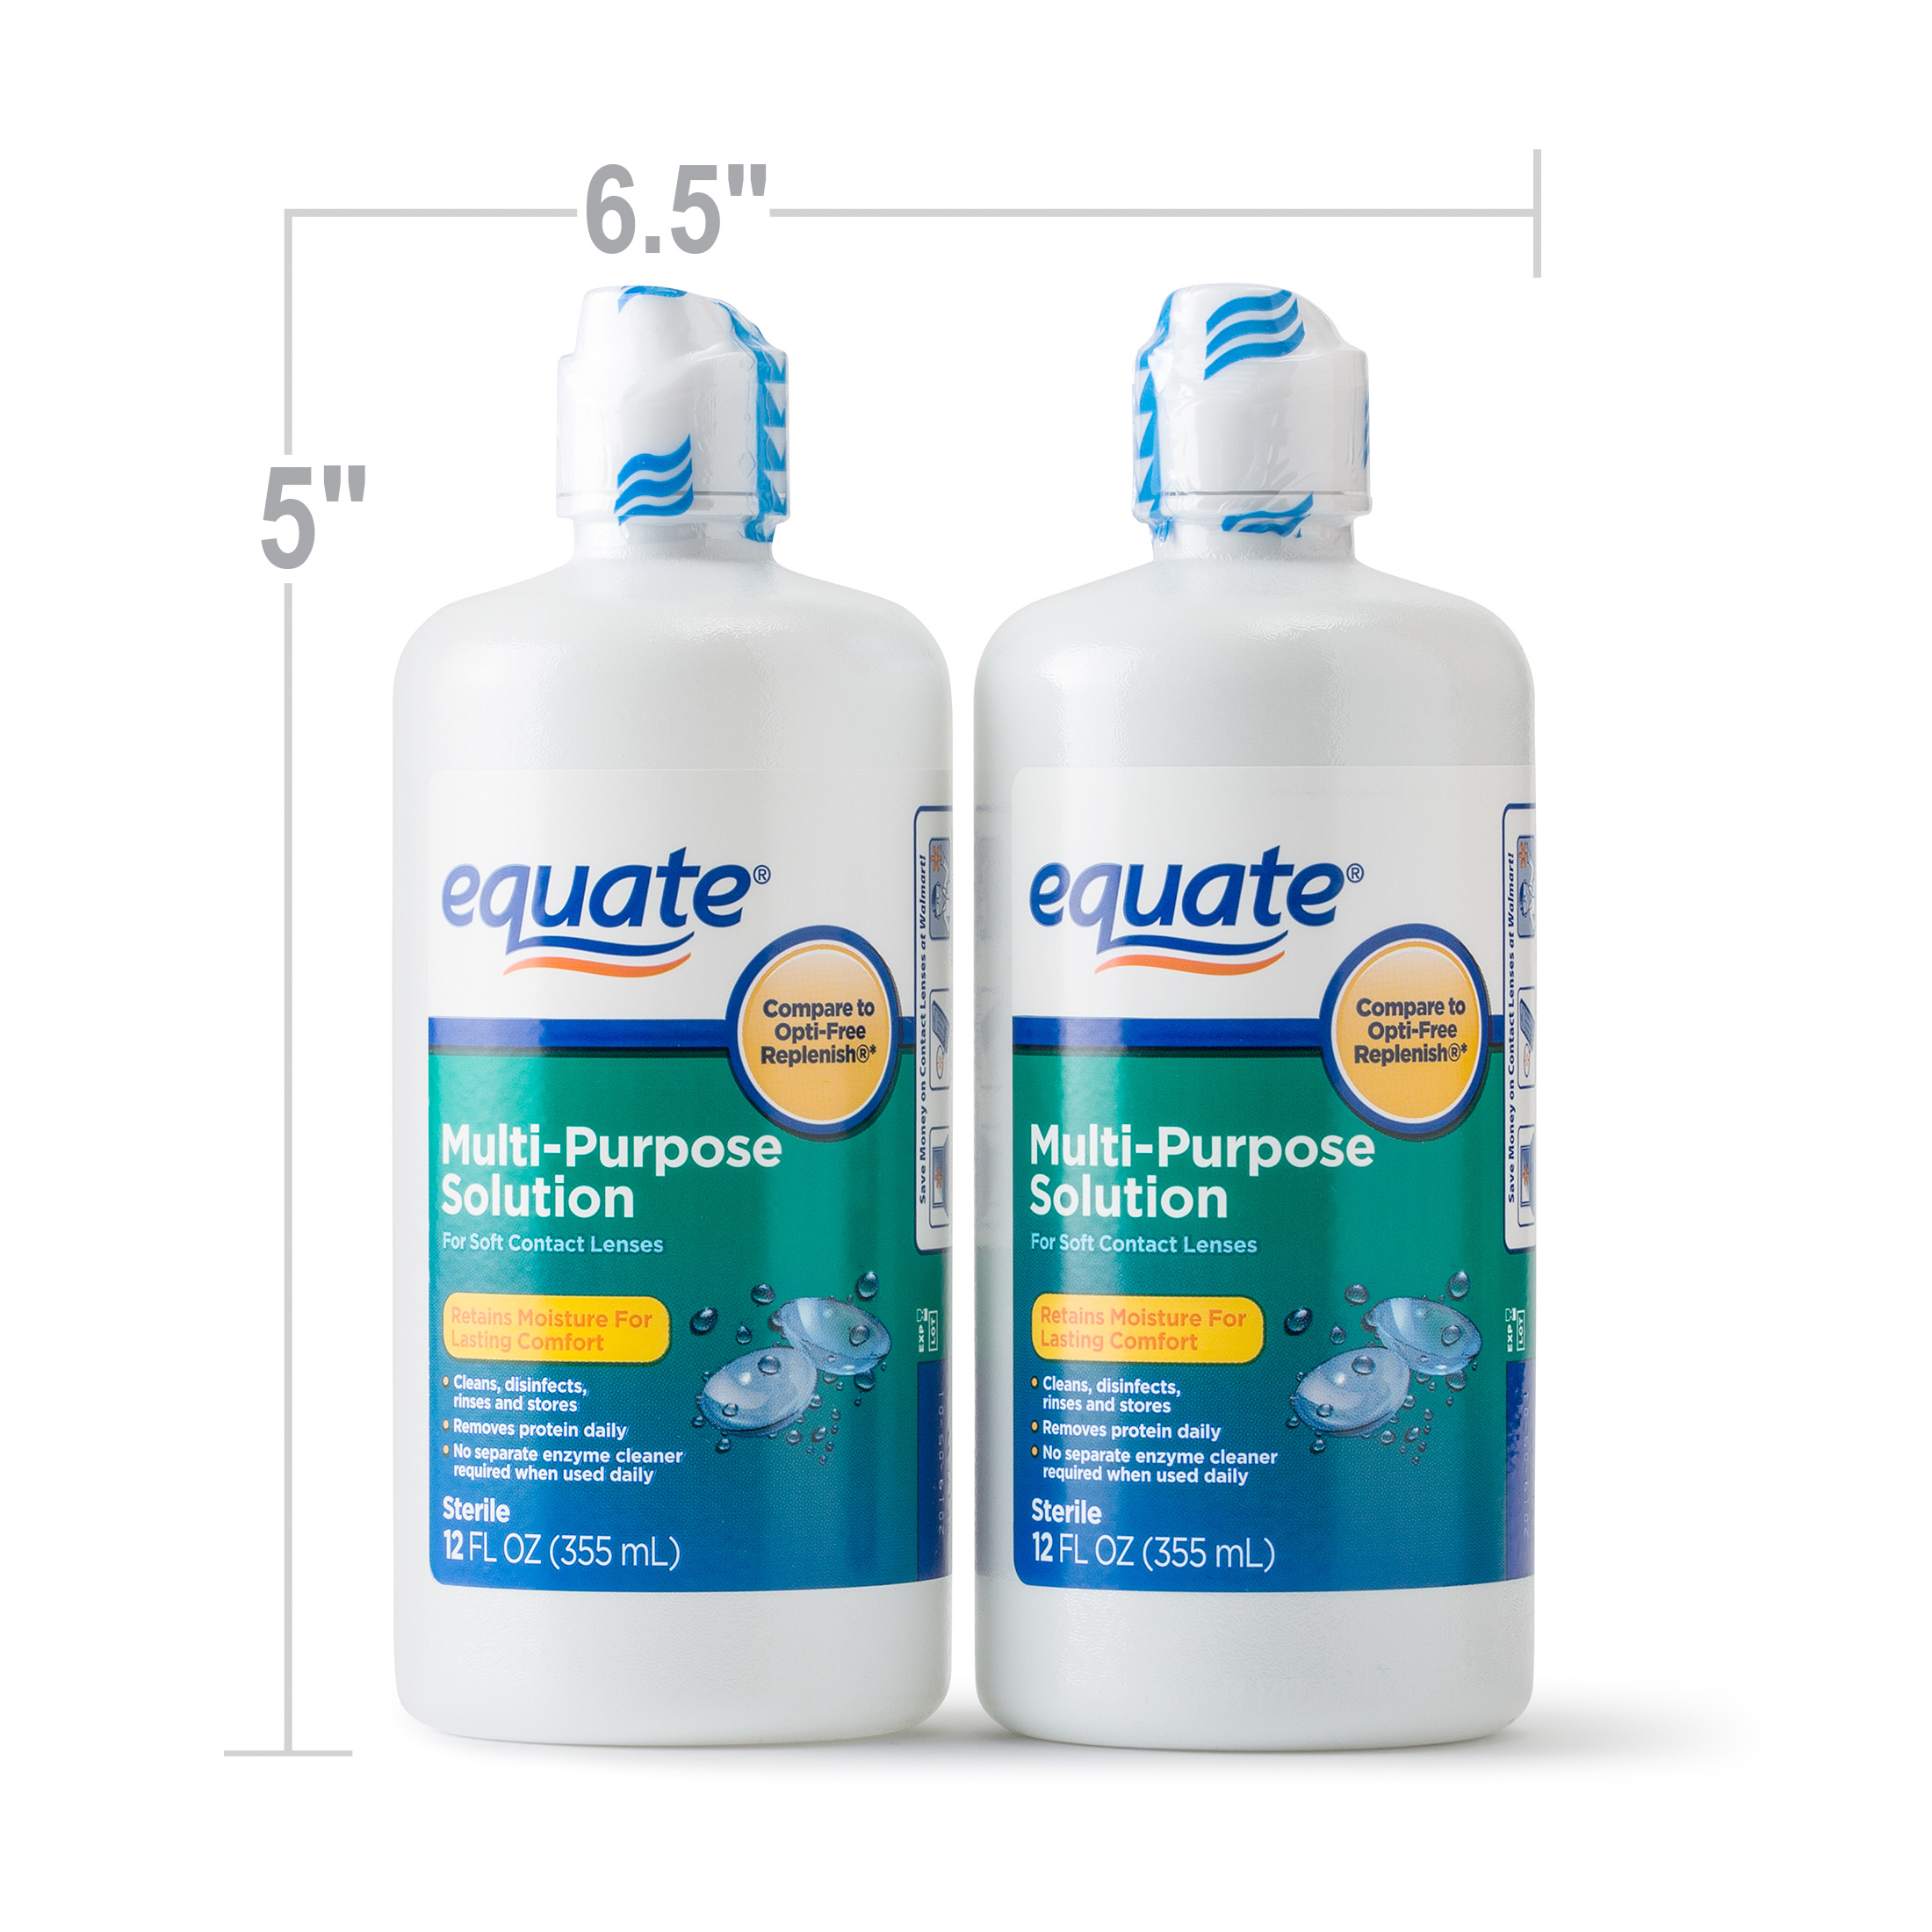 2 pack) equate sterile multi purpose contact solution , 12 oz, 2 pk Bionic Contact Lens (2 pack) equate sterile multi purpose contact solution , 12 oz, 2 pk walmart com